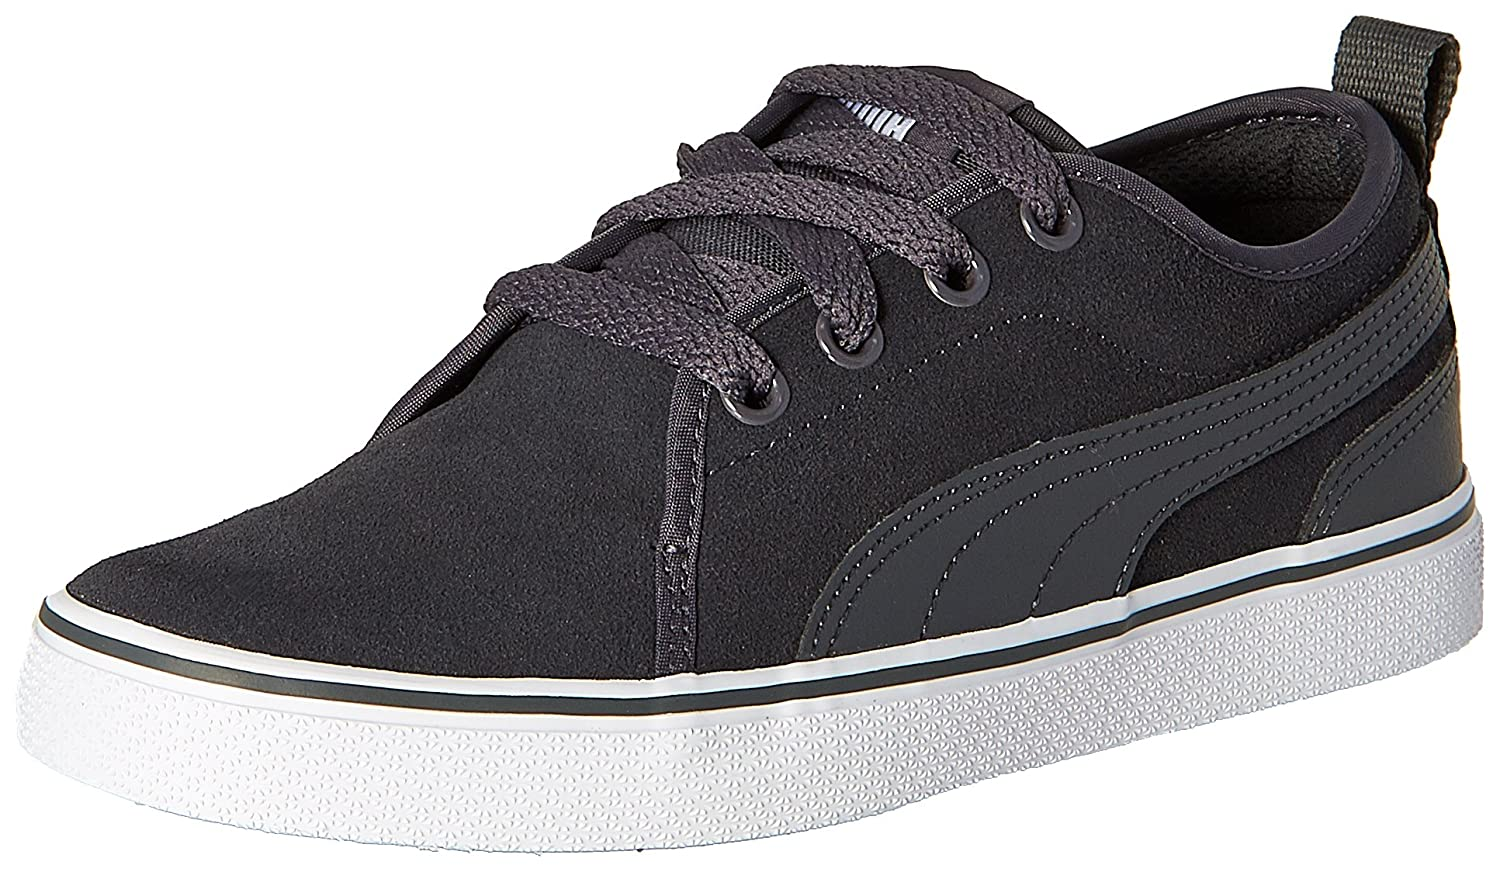 2cf099a38564 Puma Women s S Street Vulc Leather Sneakers  Buy Online at Low Prices in  India - Amazon.in